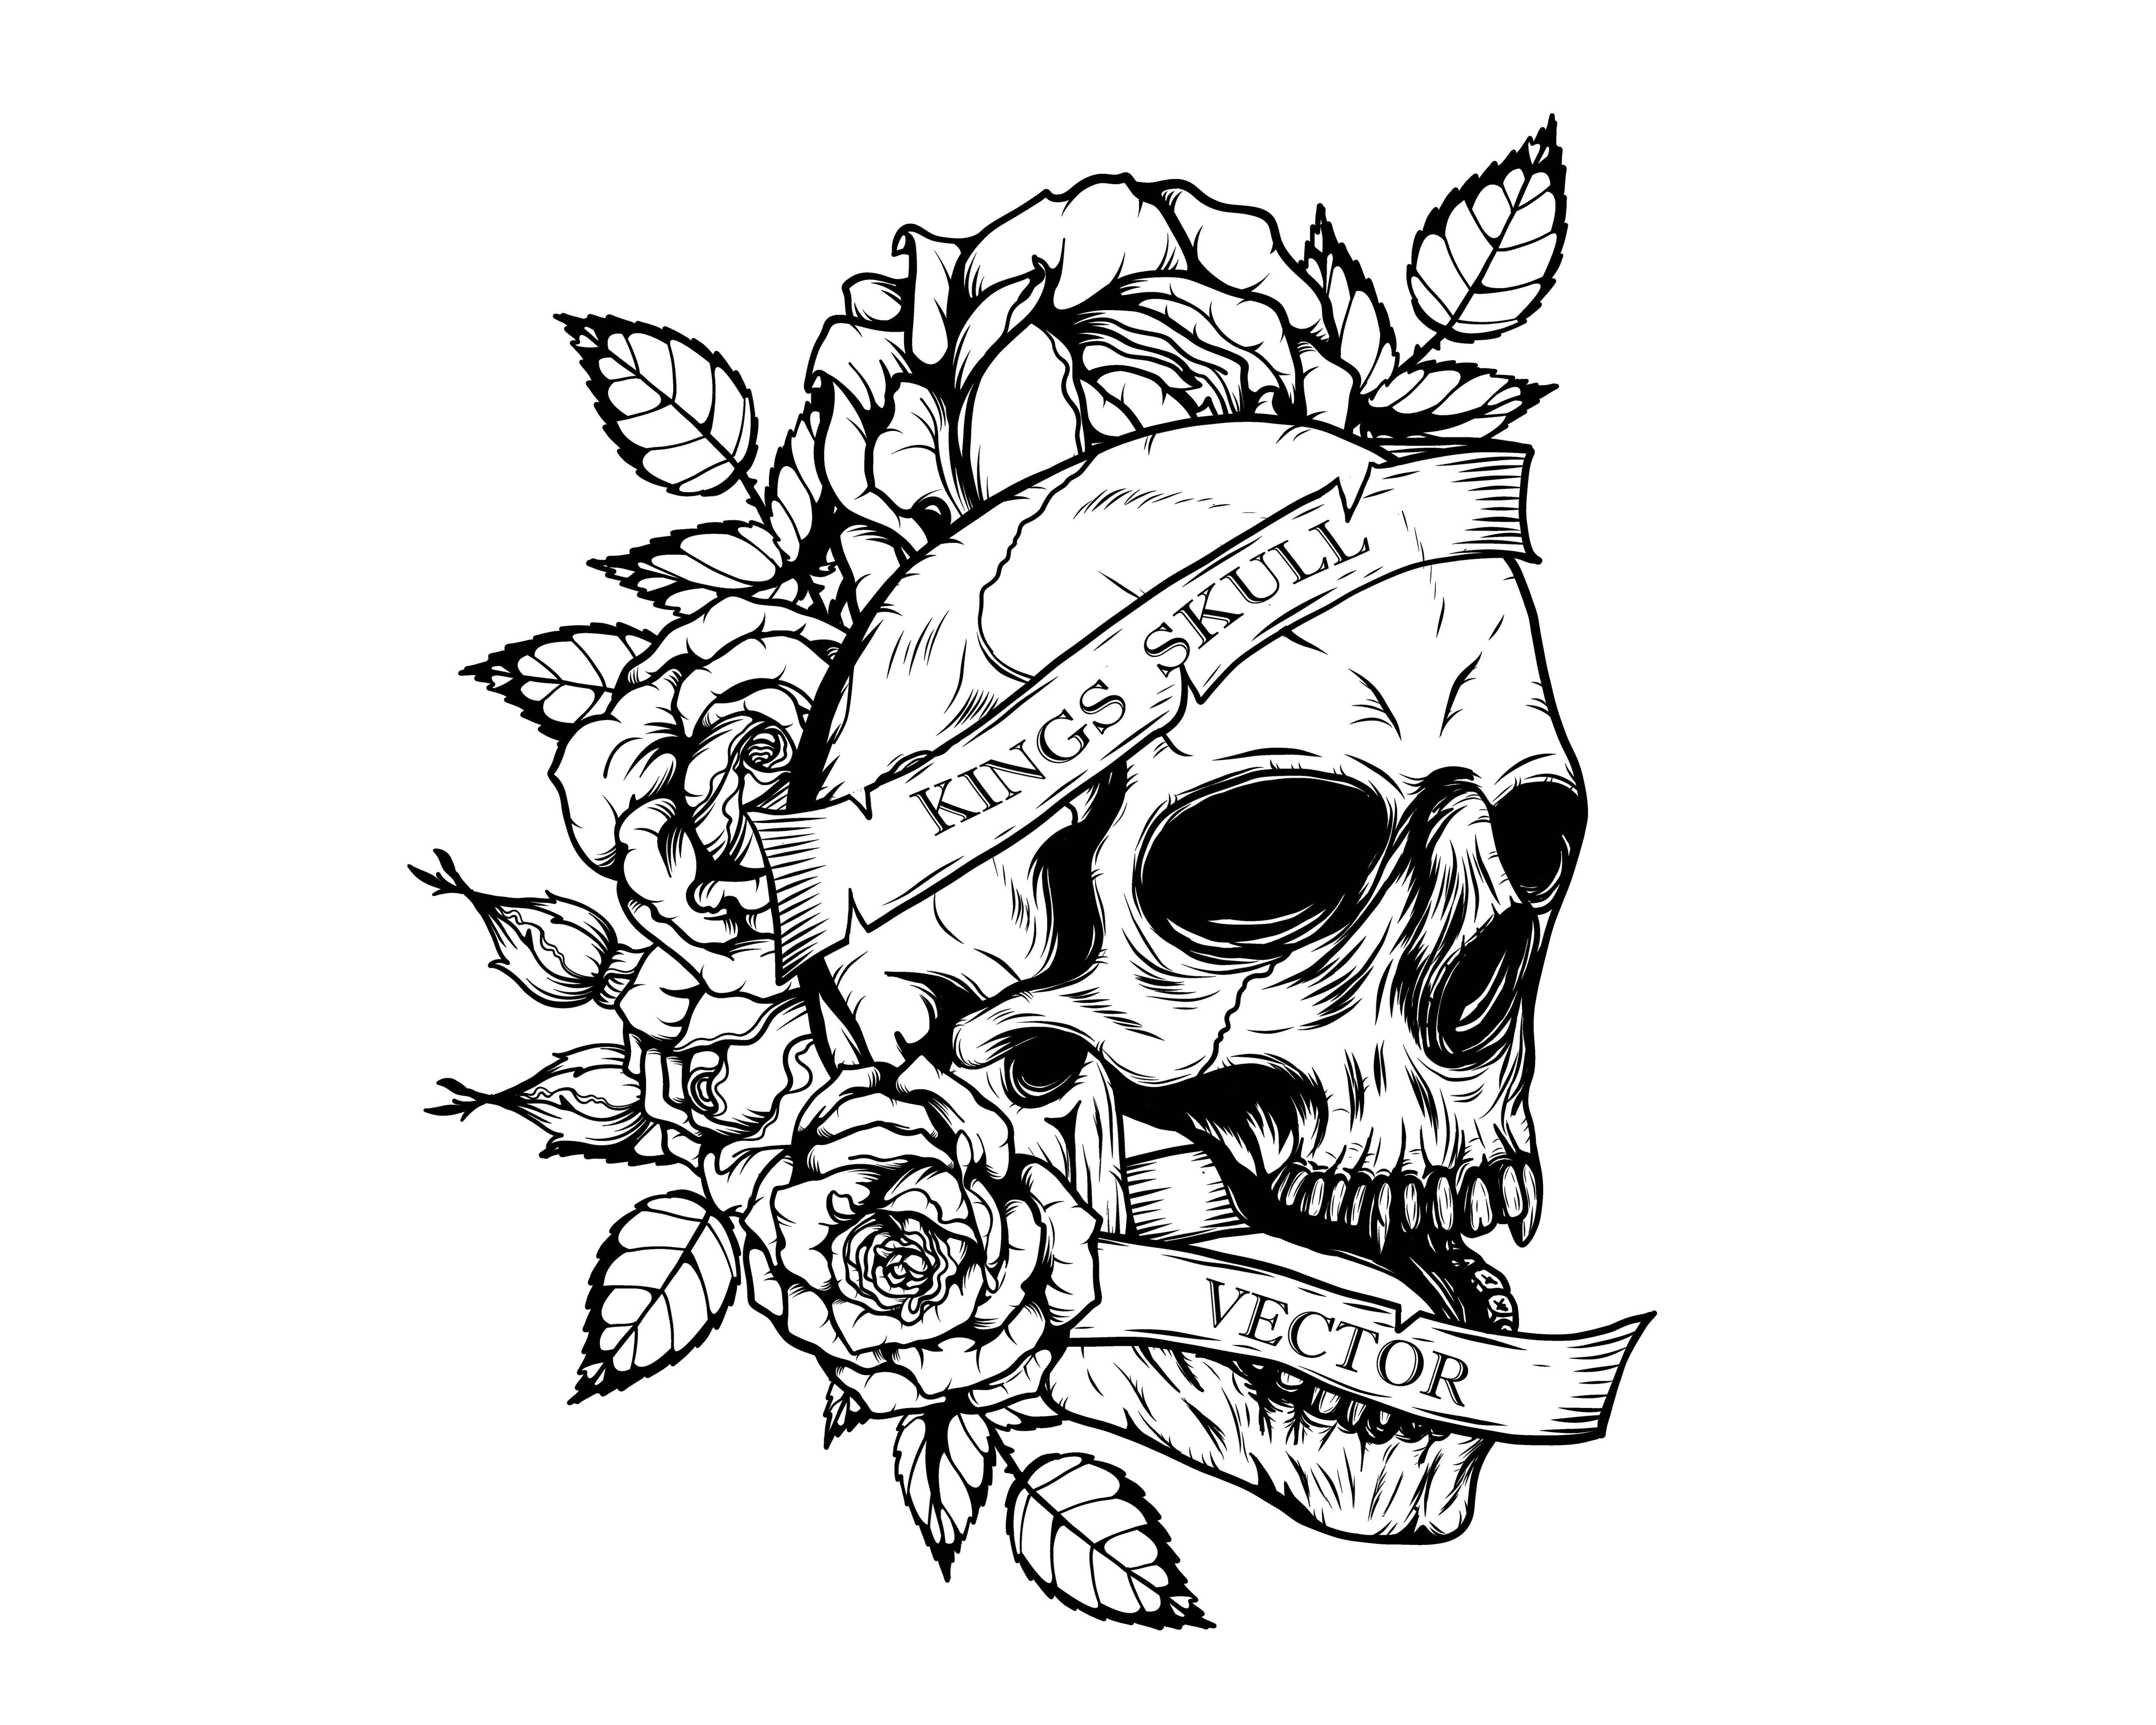 Hand Drawings Roses And Skulls: Skull With Chrysanthemum Tattoo By Hand Drawing